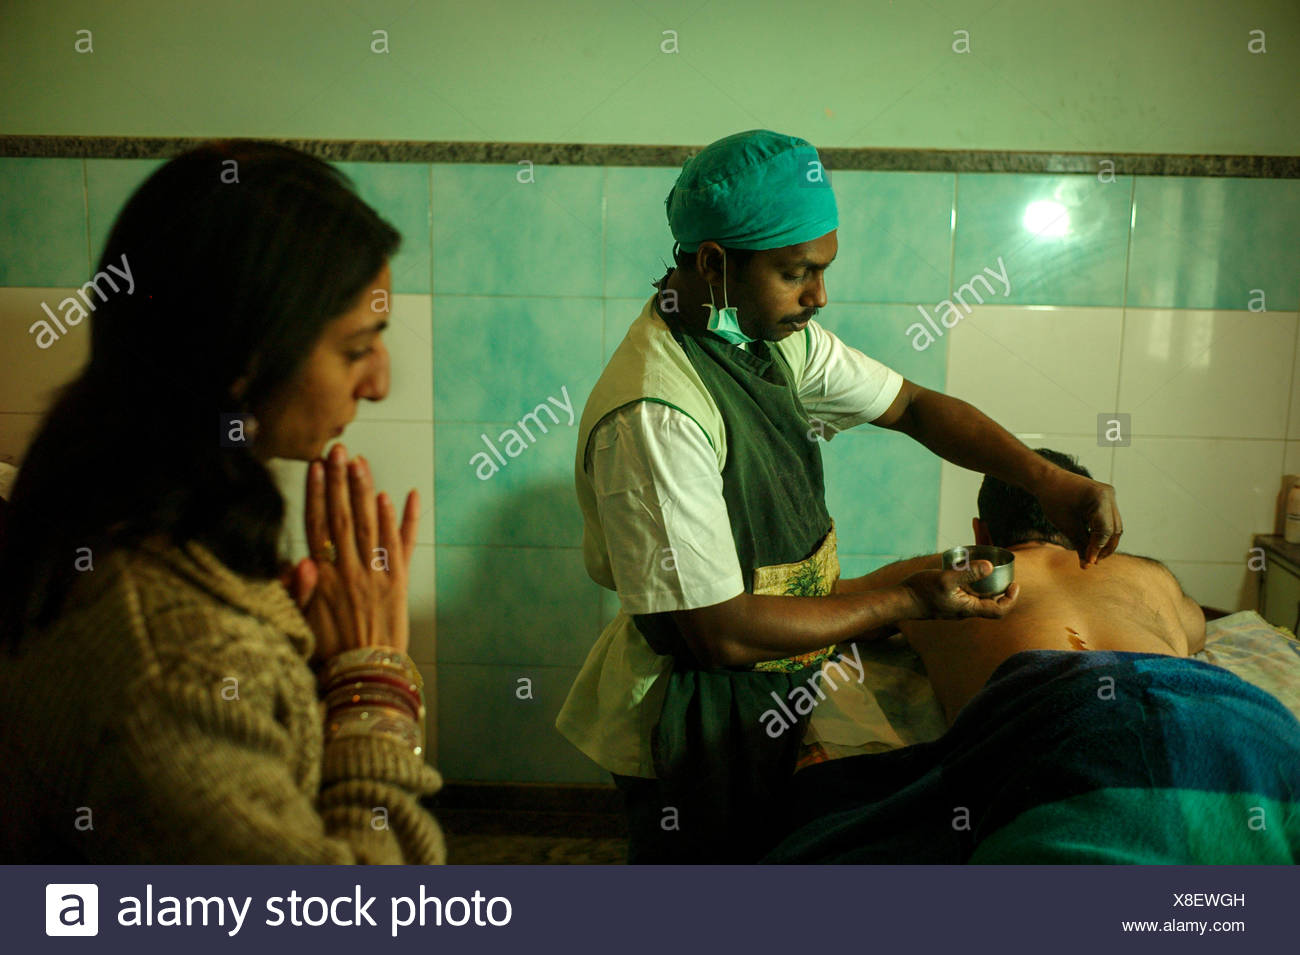 An Ayurvedic practitioner treats a patient for back pain using Patra Pinda Sweda Therapy at an Ayurvedic center, observed by a doctor. - Stock Image